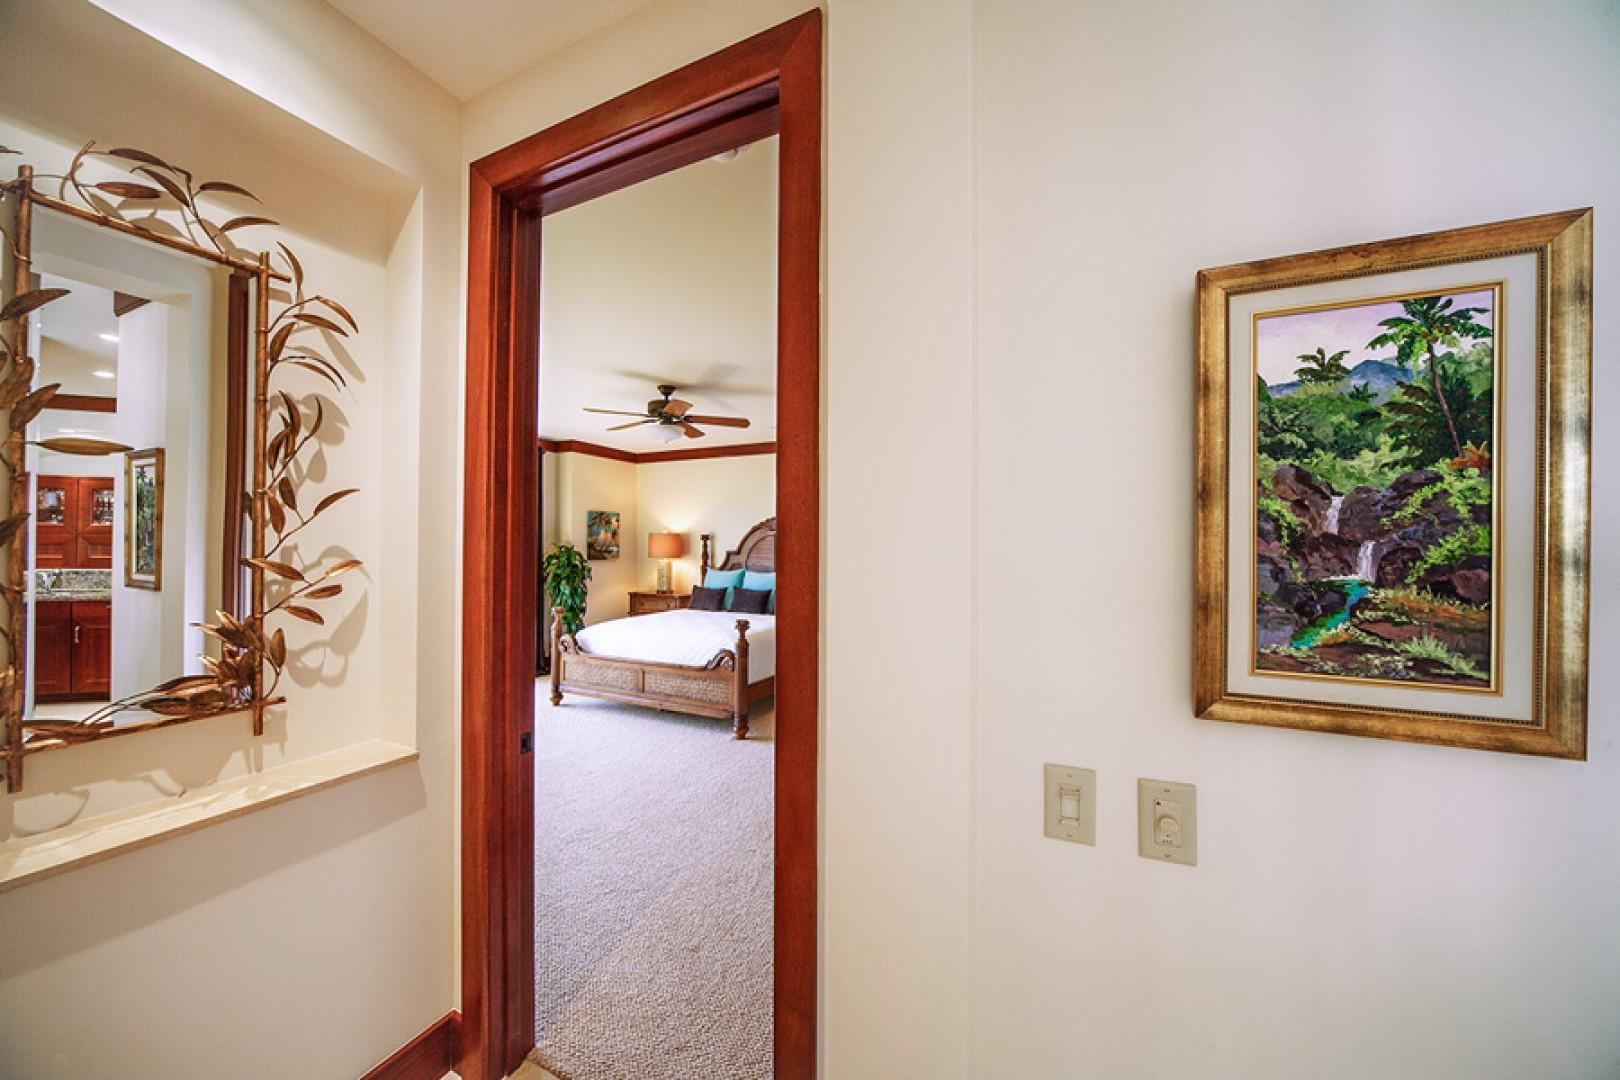 Entry into the master bedroom.